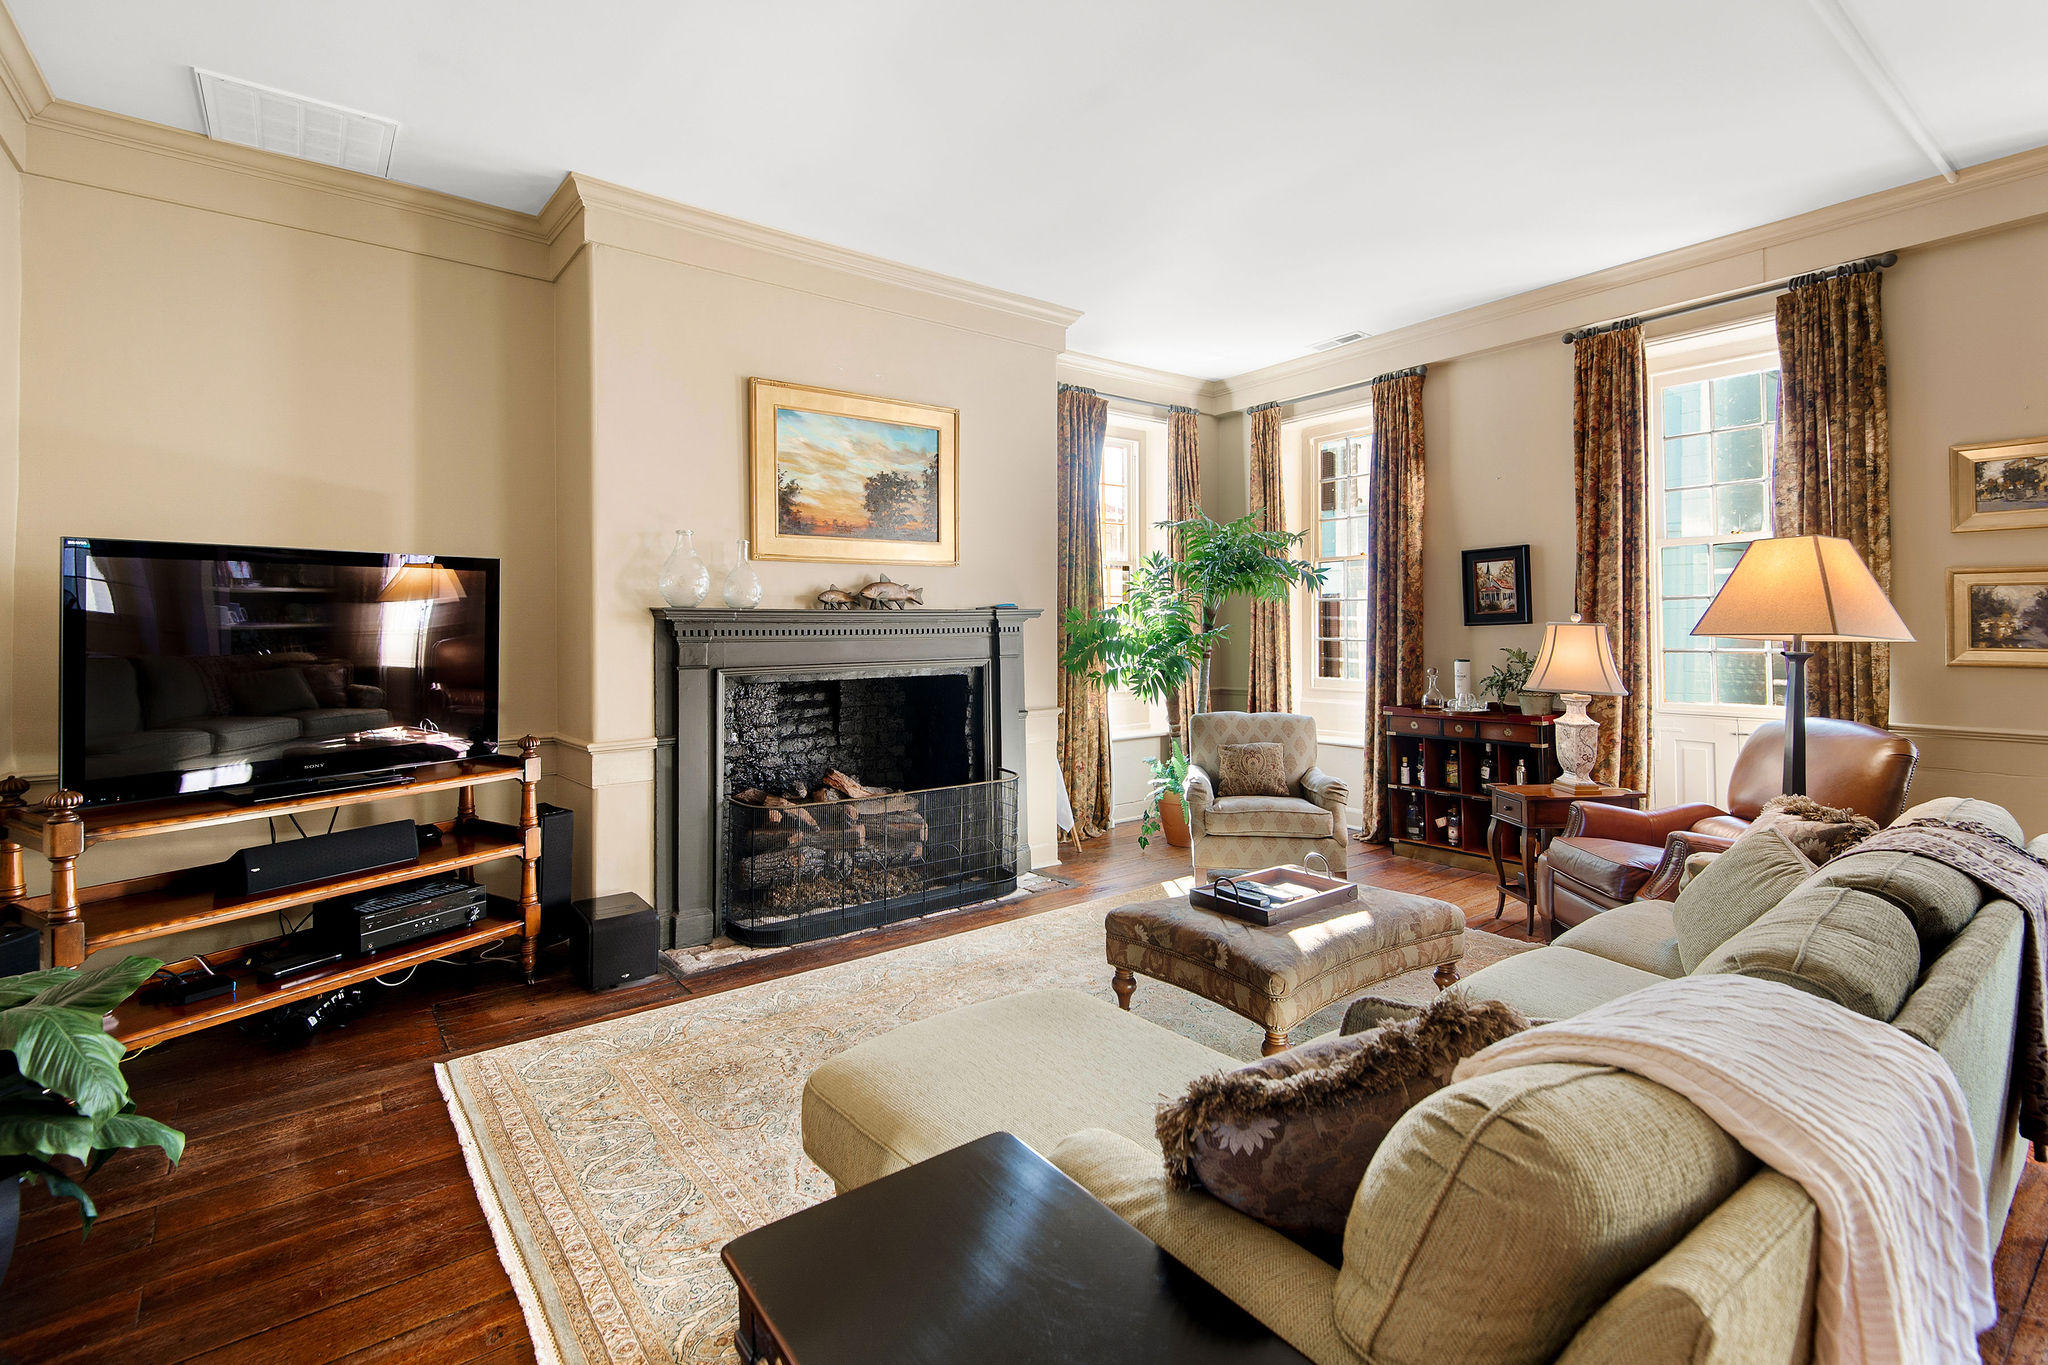 South of Broad Homes For Sale - 54 Tradd, Charleston, SC - 3